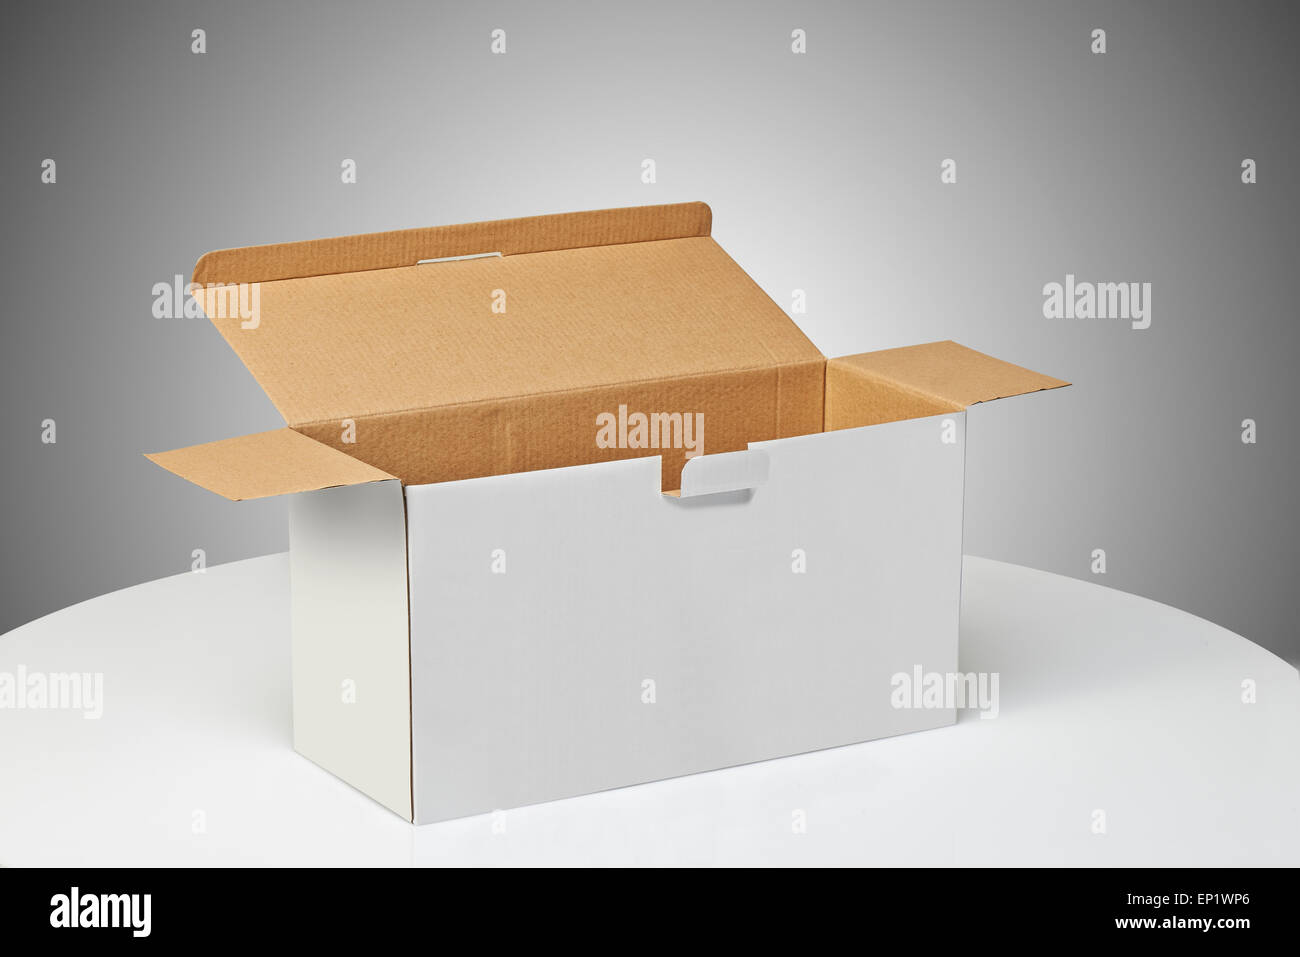 Real Cardboard box opened ready for packaging and delivering - Stock Image